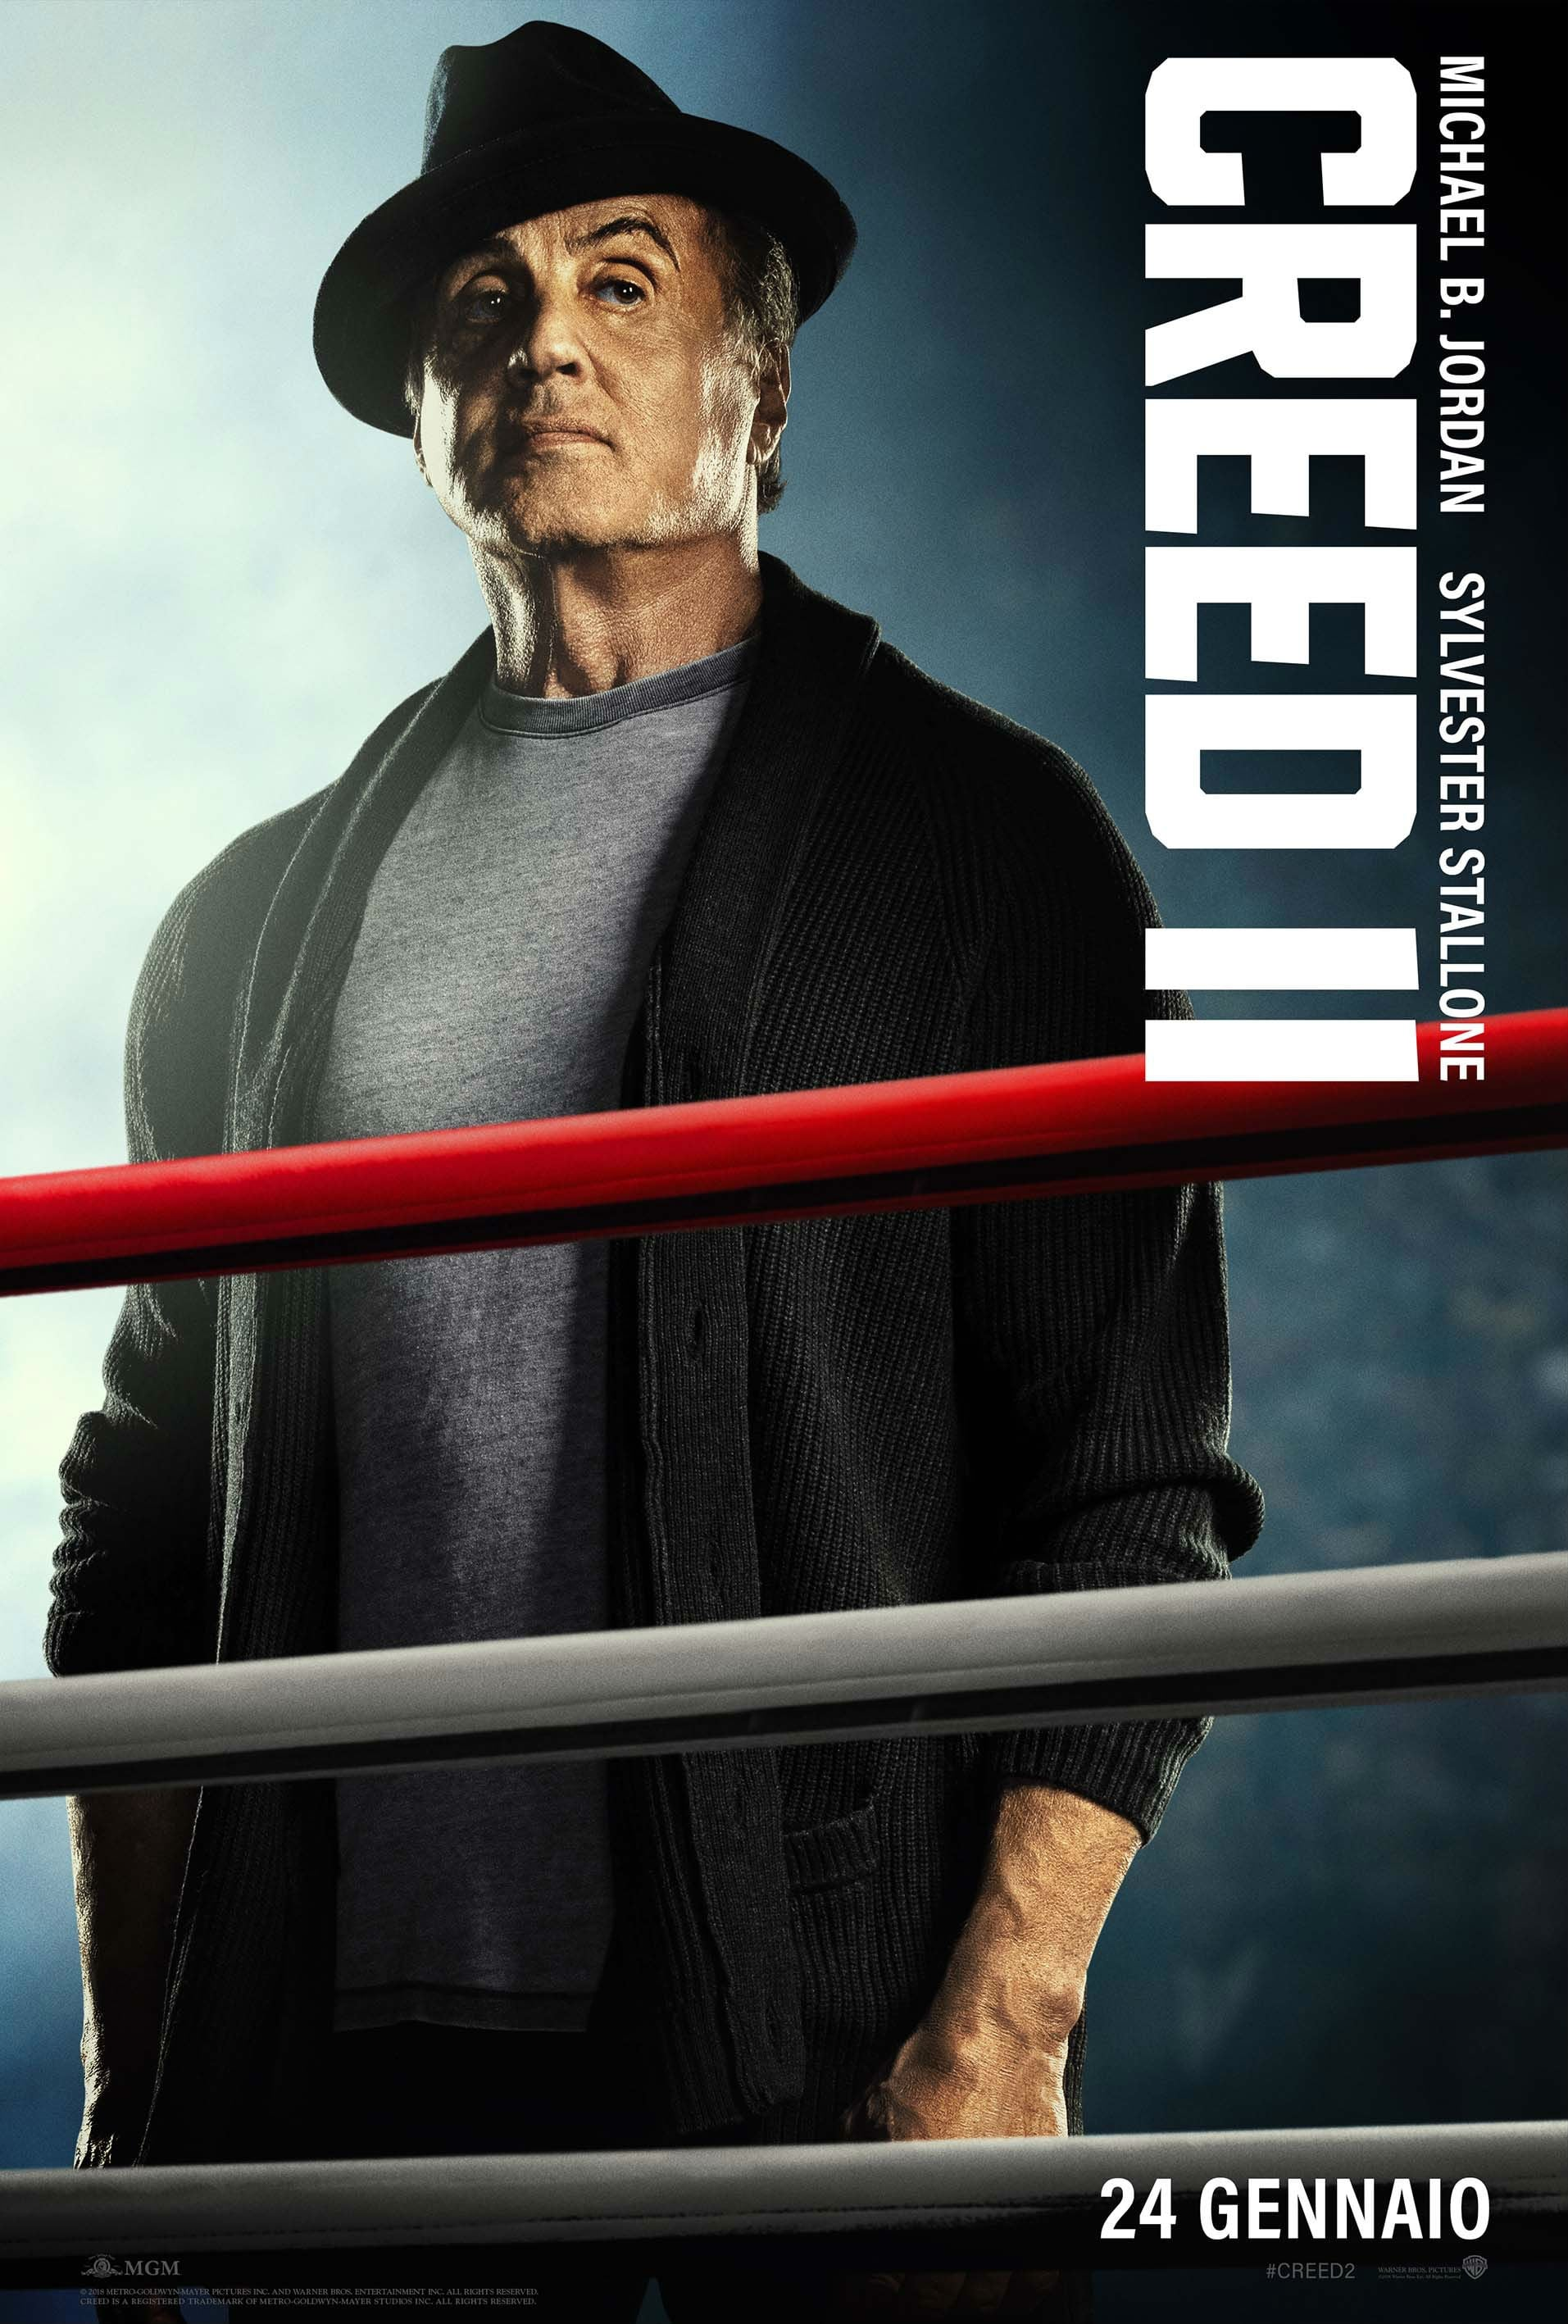 Poster and image movie Creed II